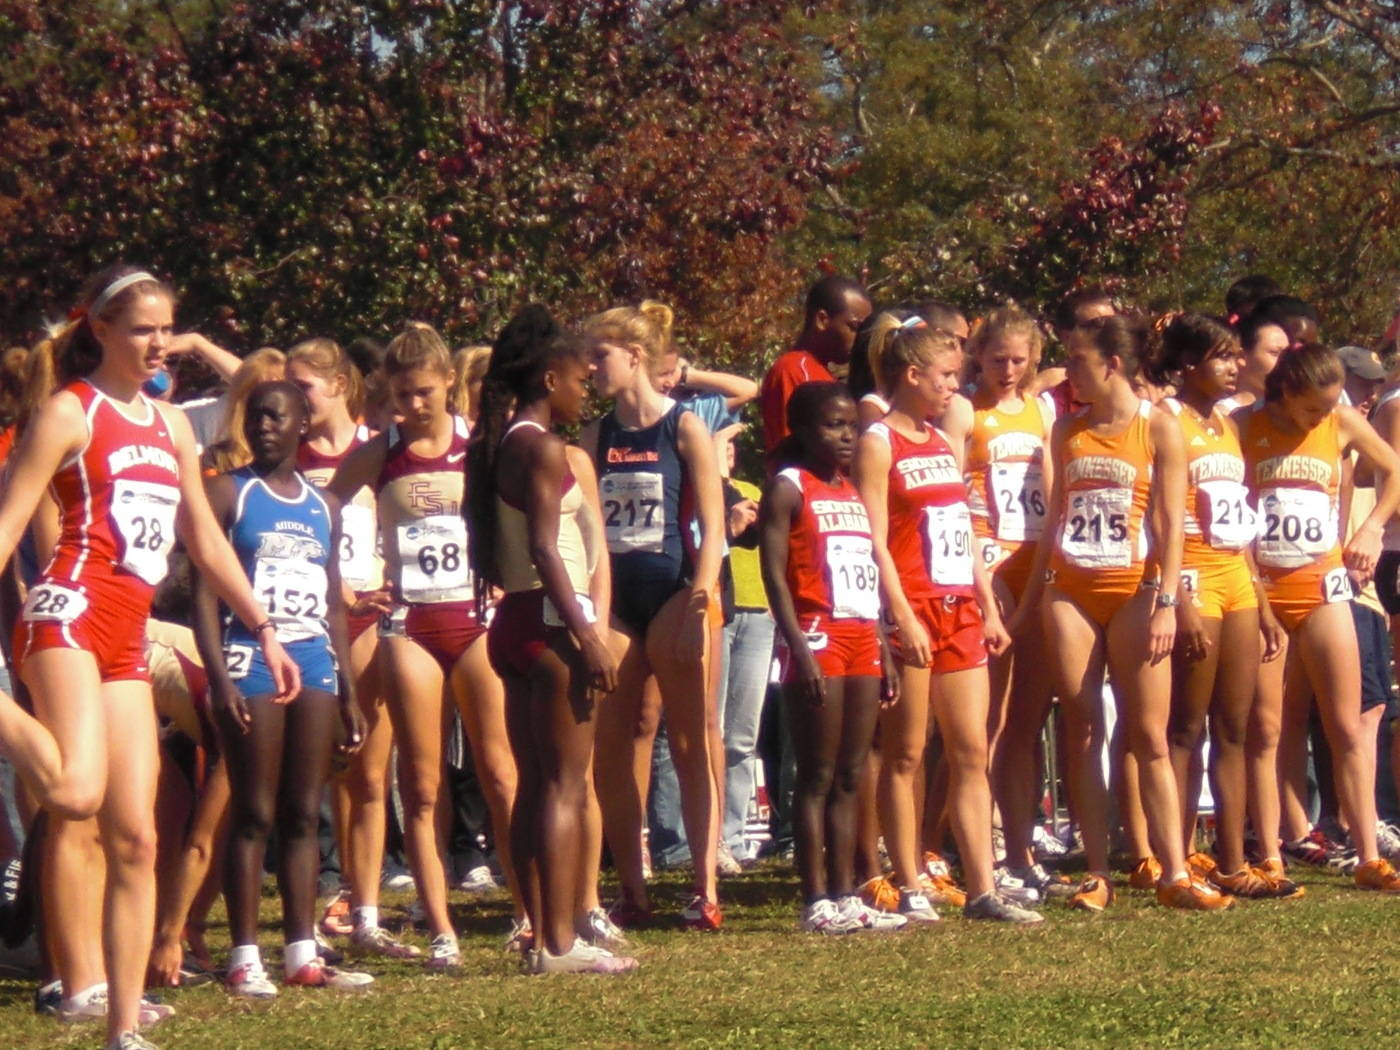 The 2009 South Regional Championships